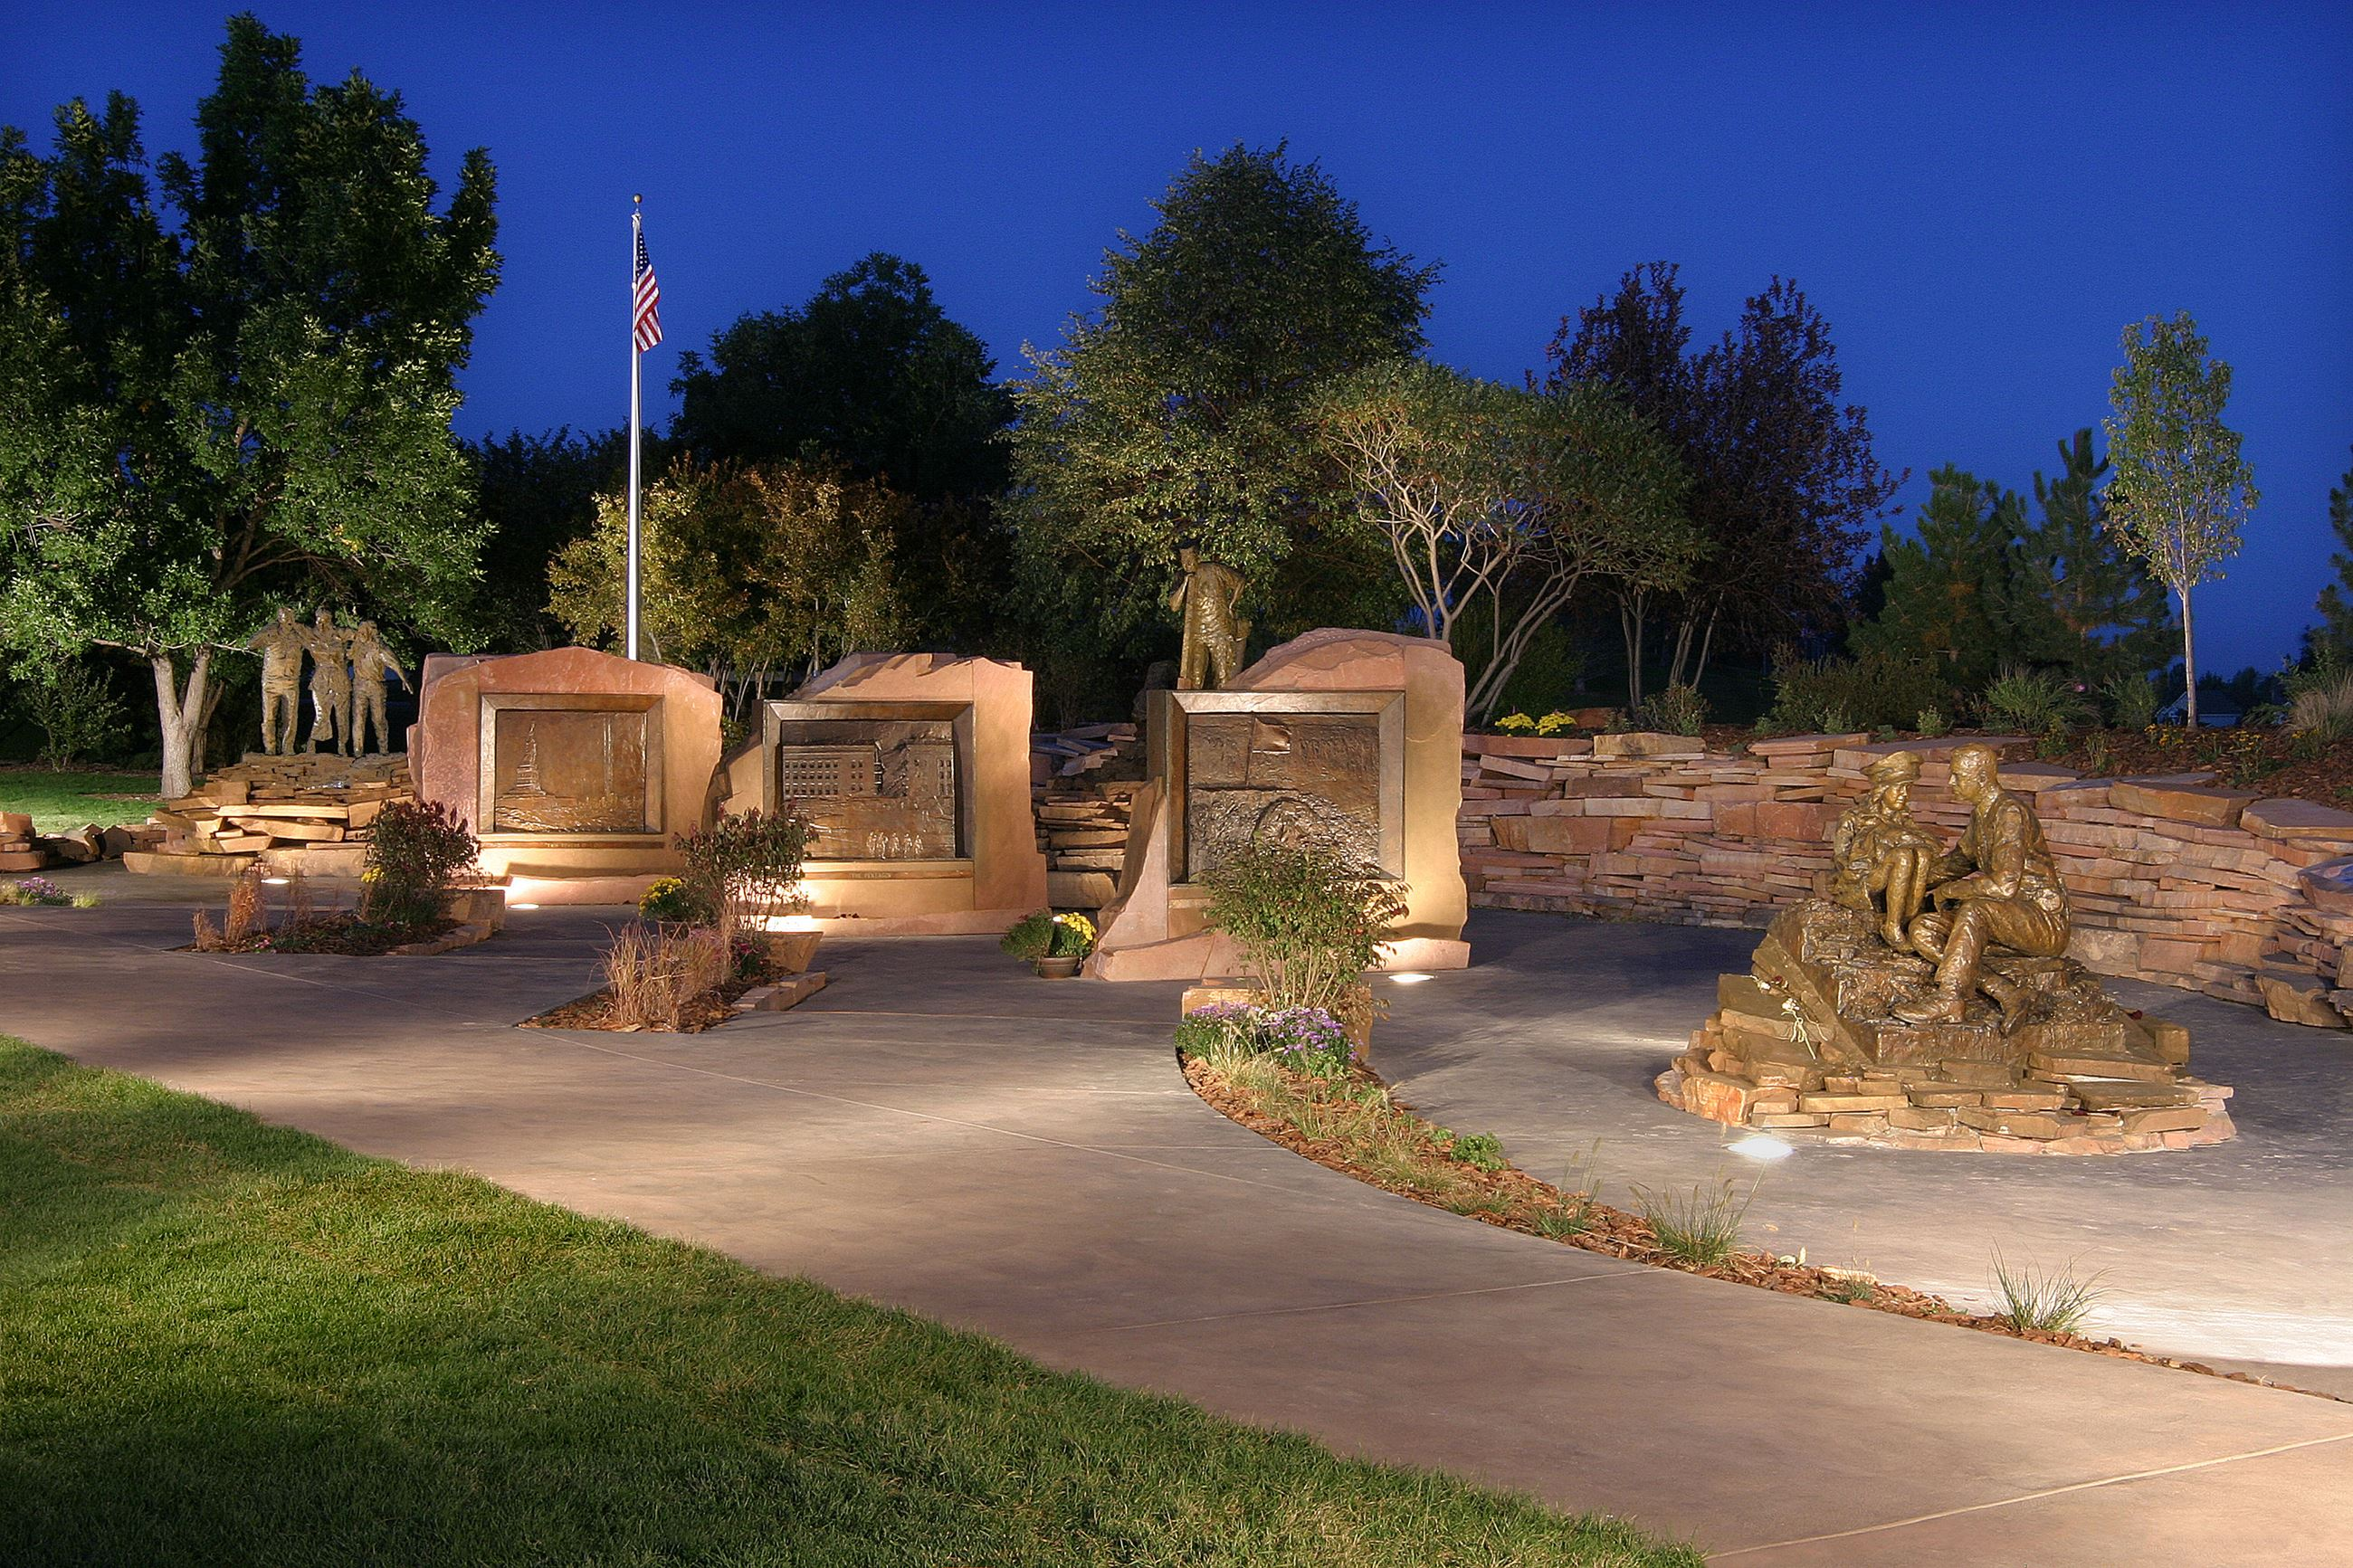 The Broomfield 9/11 Memorial lit up at night